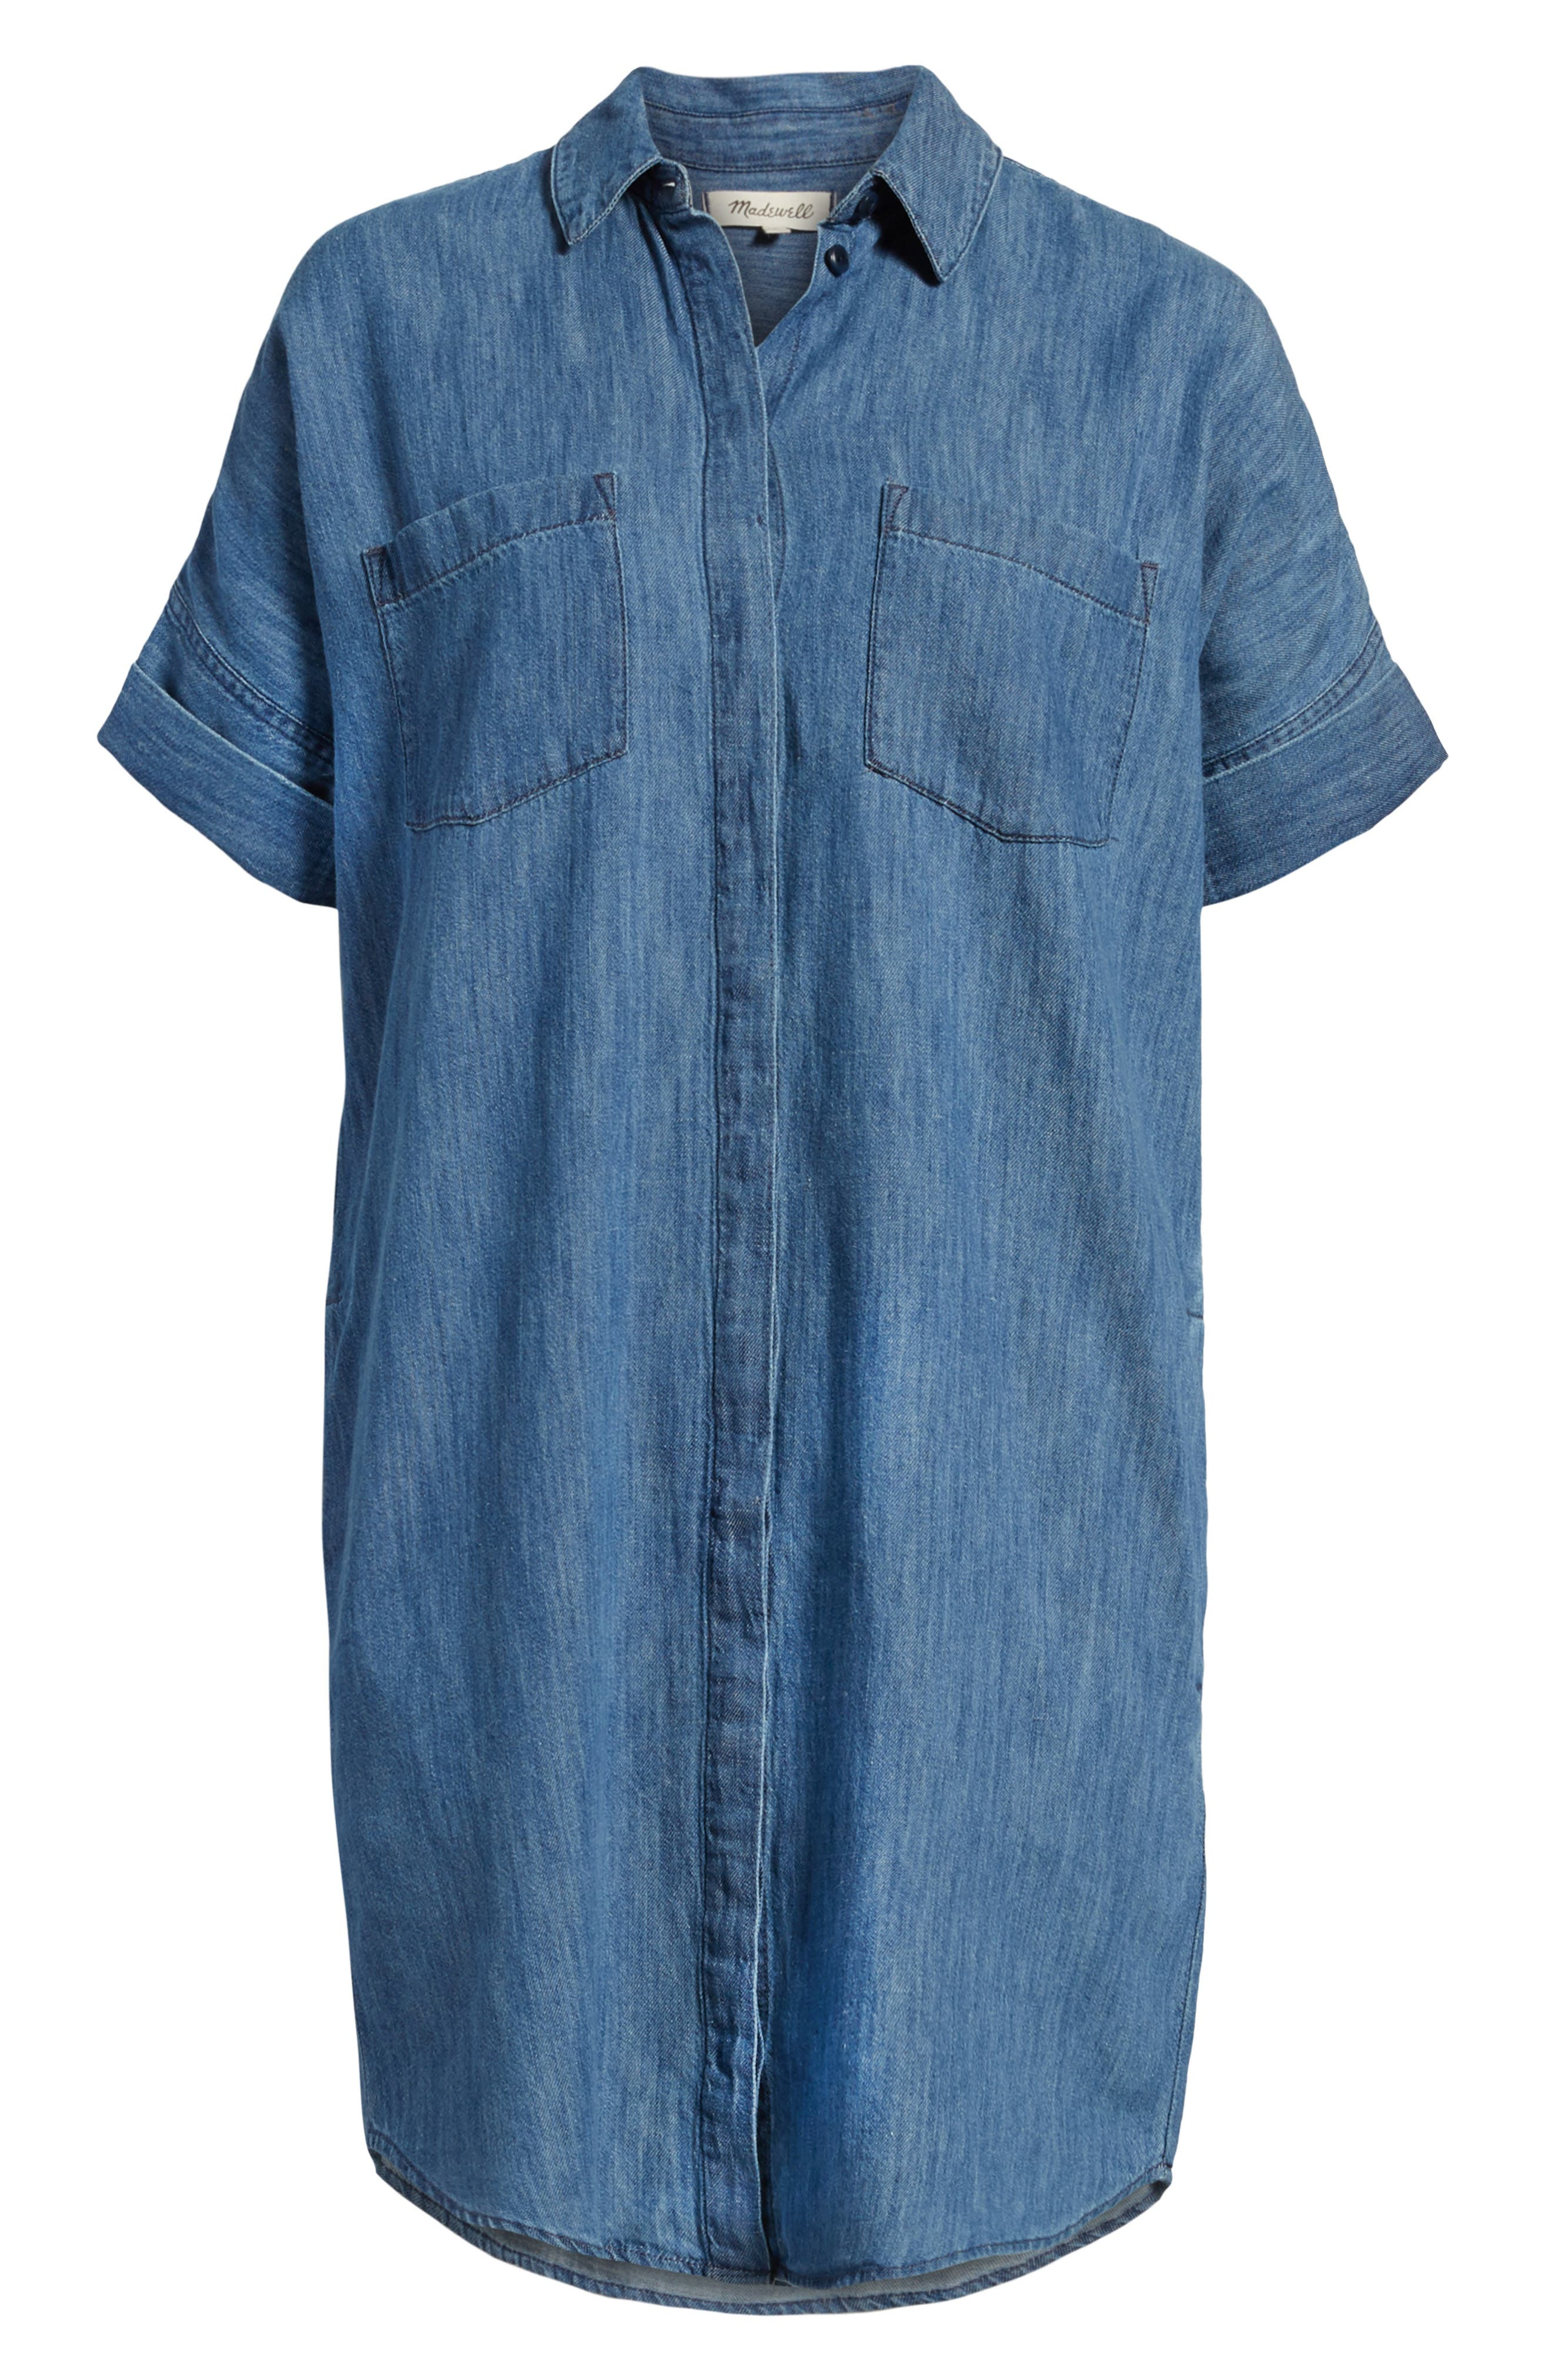 MADEWELL, Courier Denim Shirtdress, Alternate thumbnail 6, color, 400